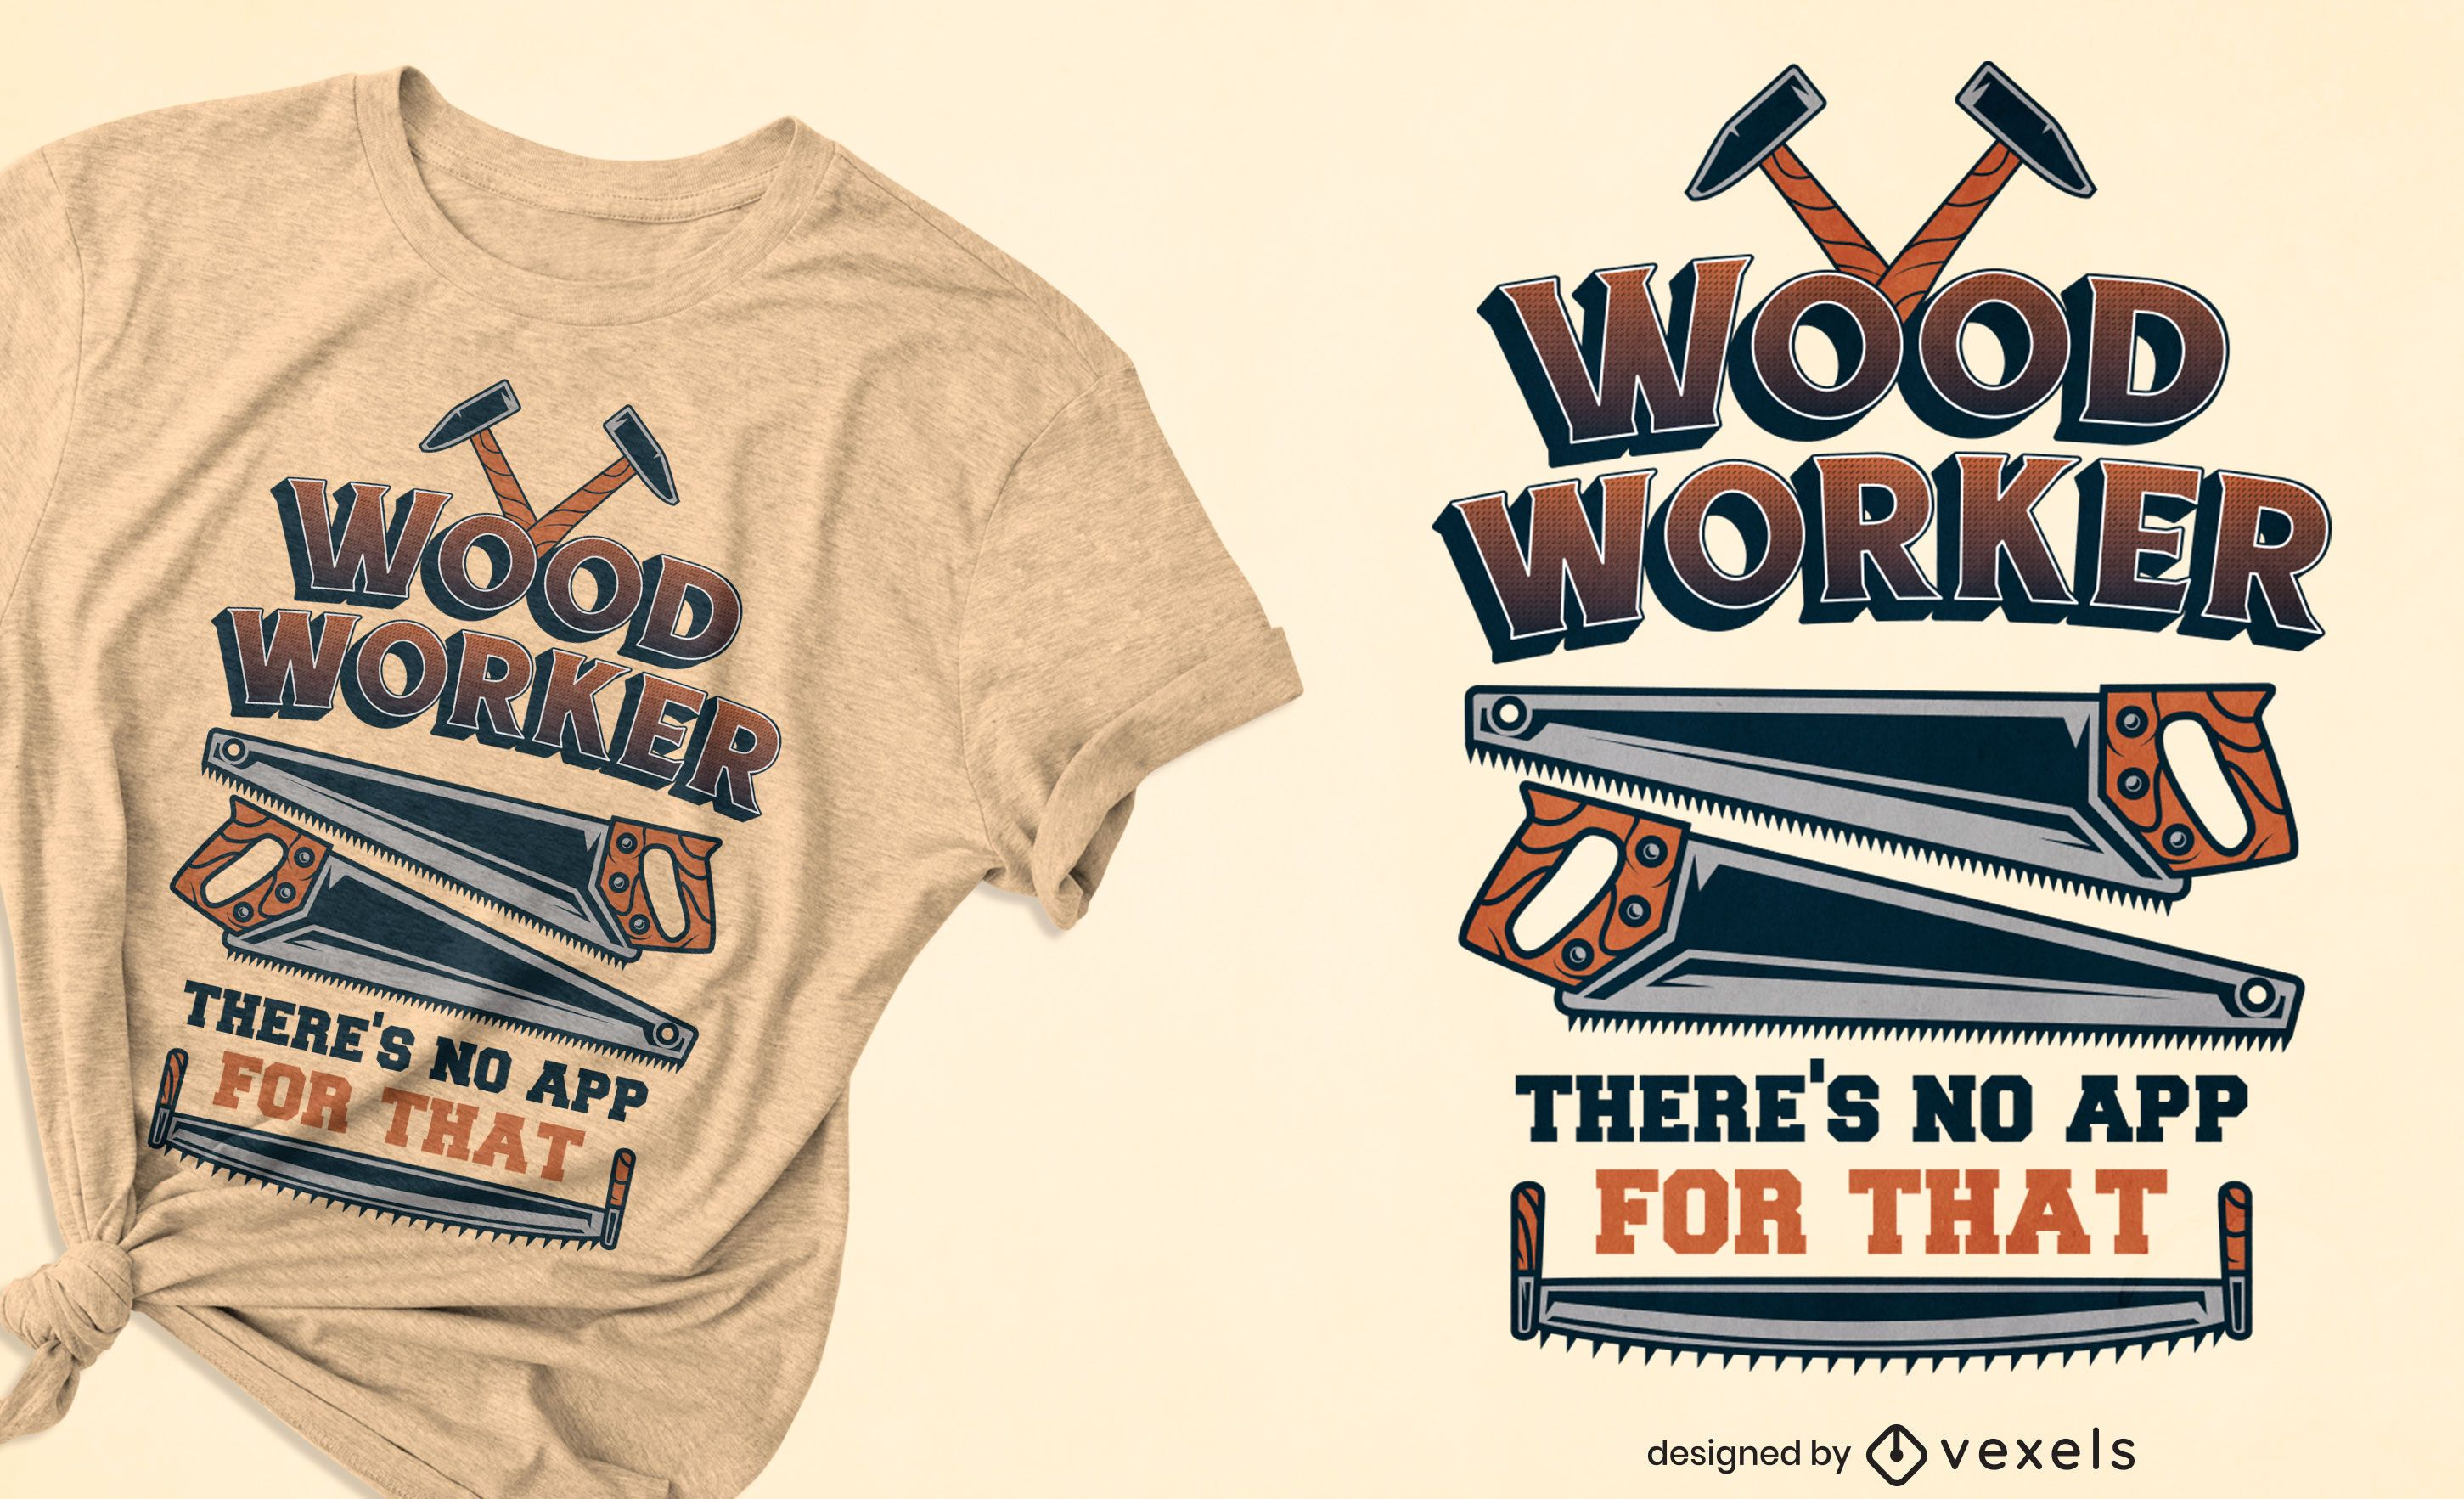 Wood worker quote t-shirt design